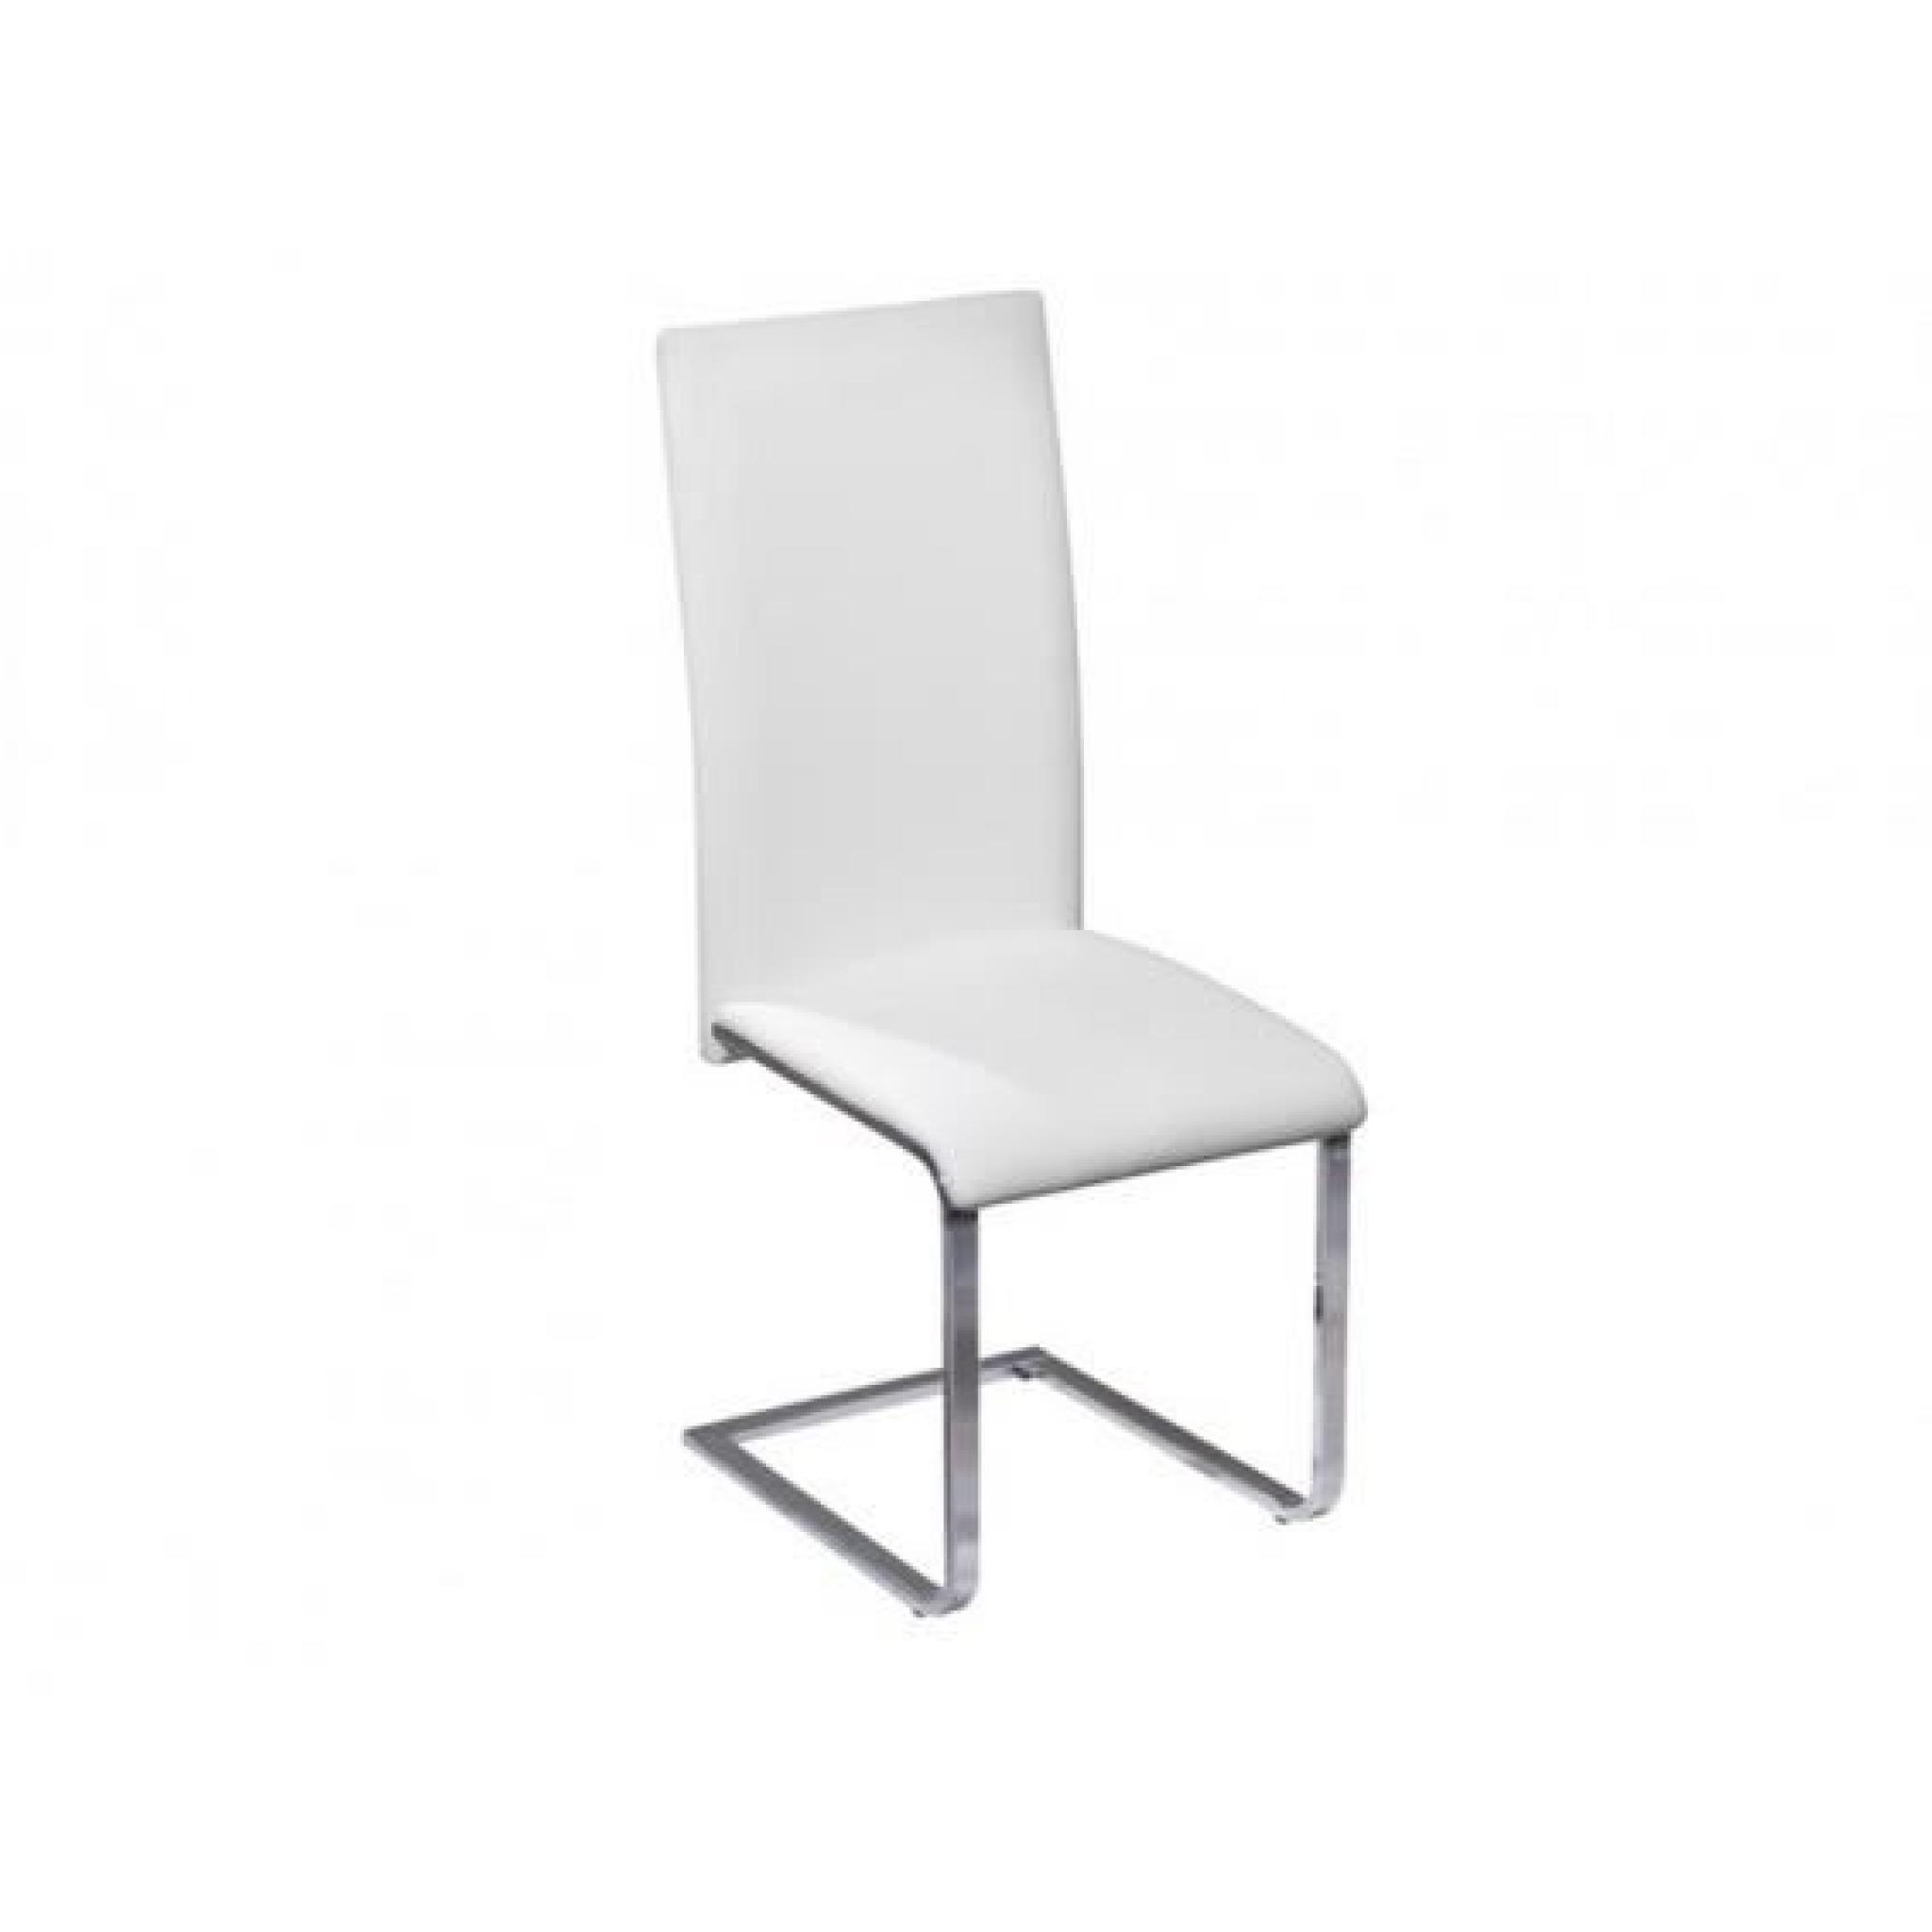 Chaise Blanche Pas Cher Brooklyn Lot 4 Chaises Blanches